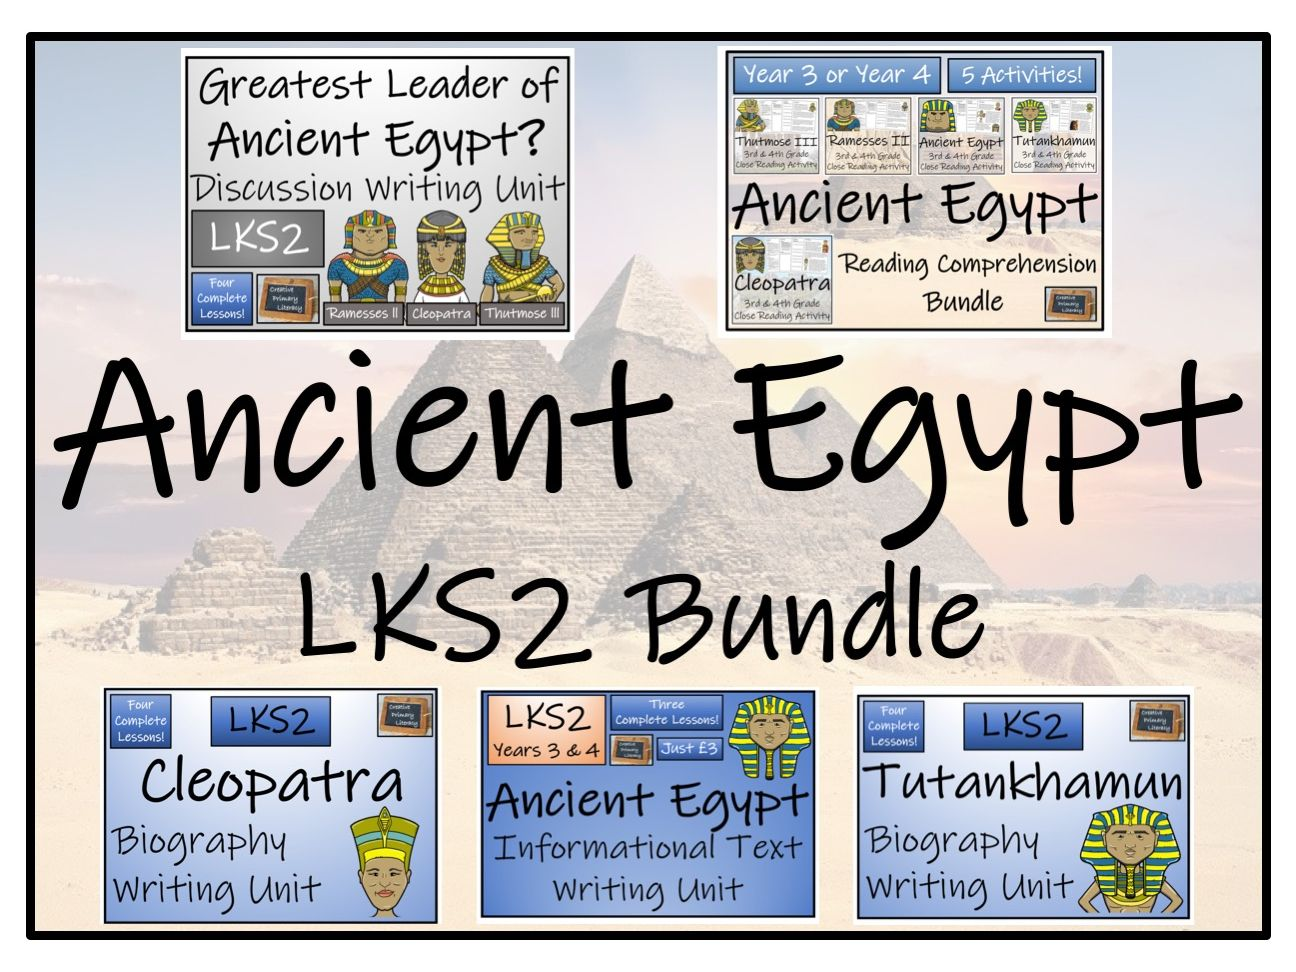 LKS2 Ancient Egypt Reading Comprehension & Writing Bundle